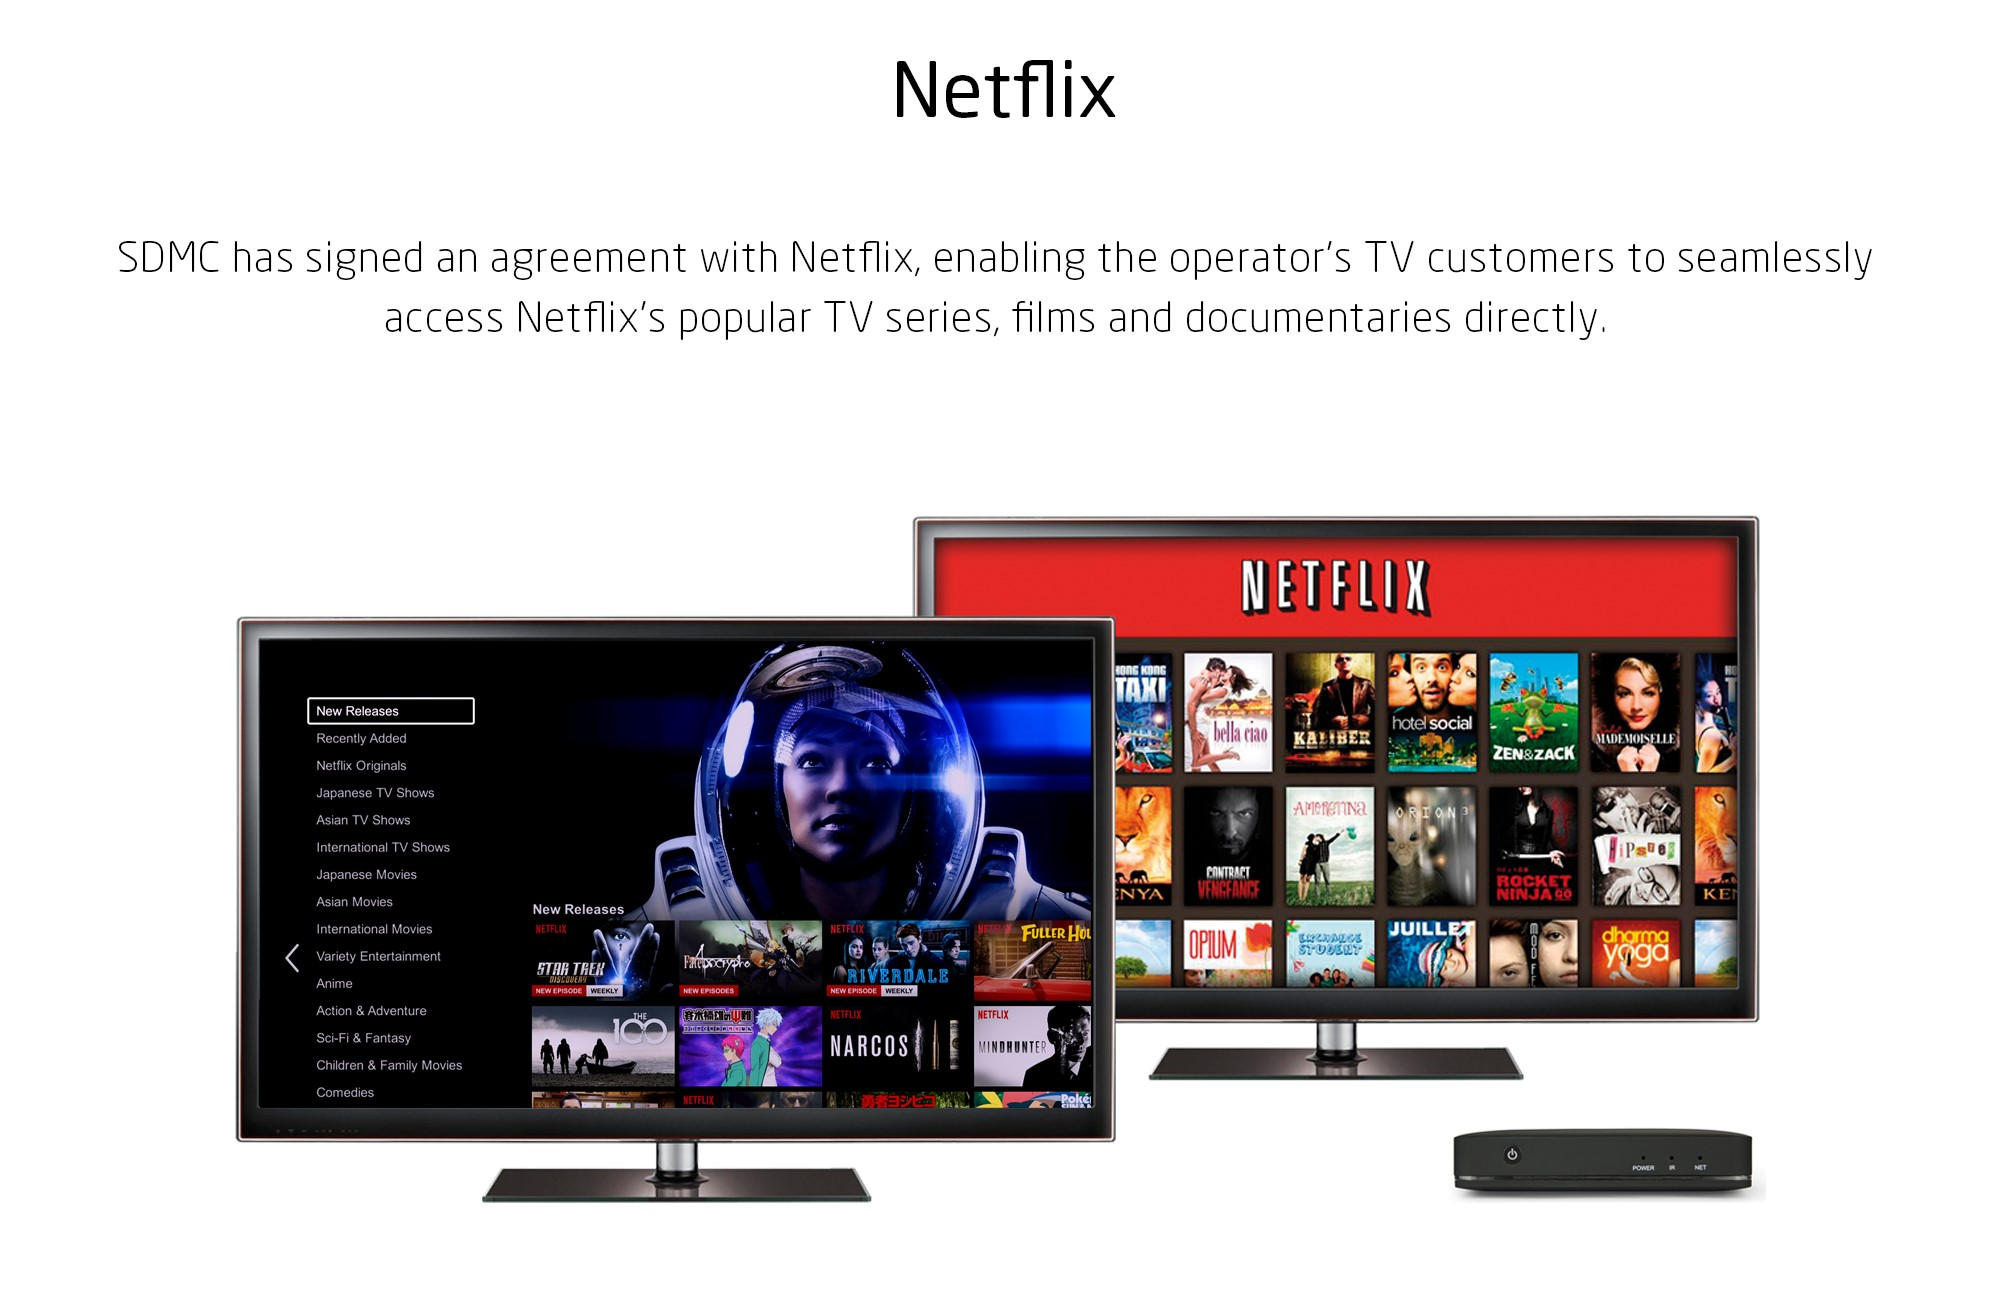 Netflix brings endless videos to operators